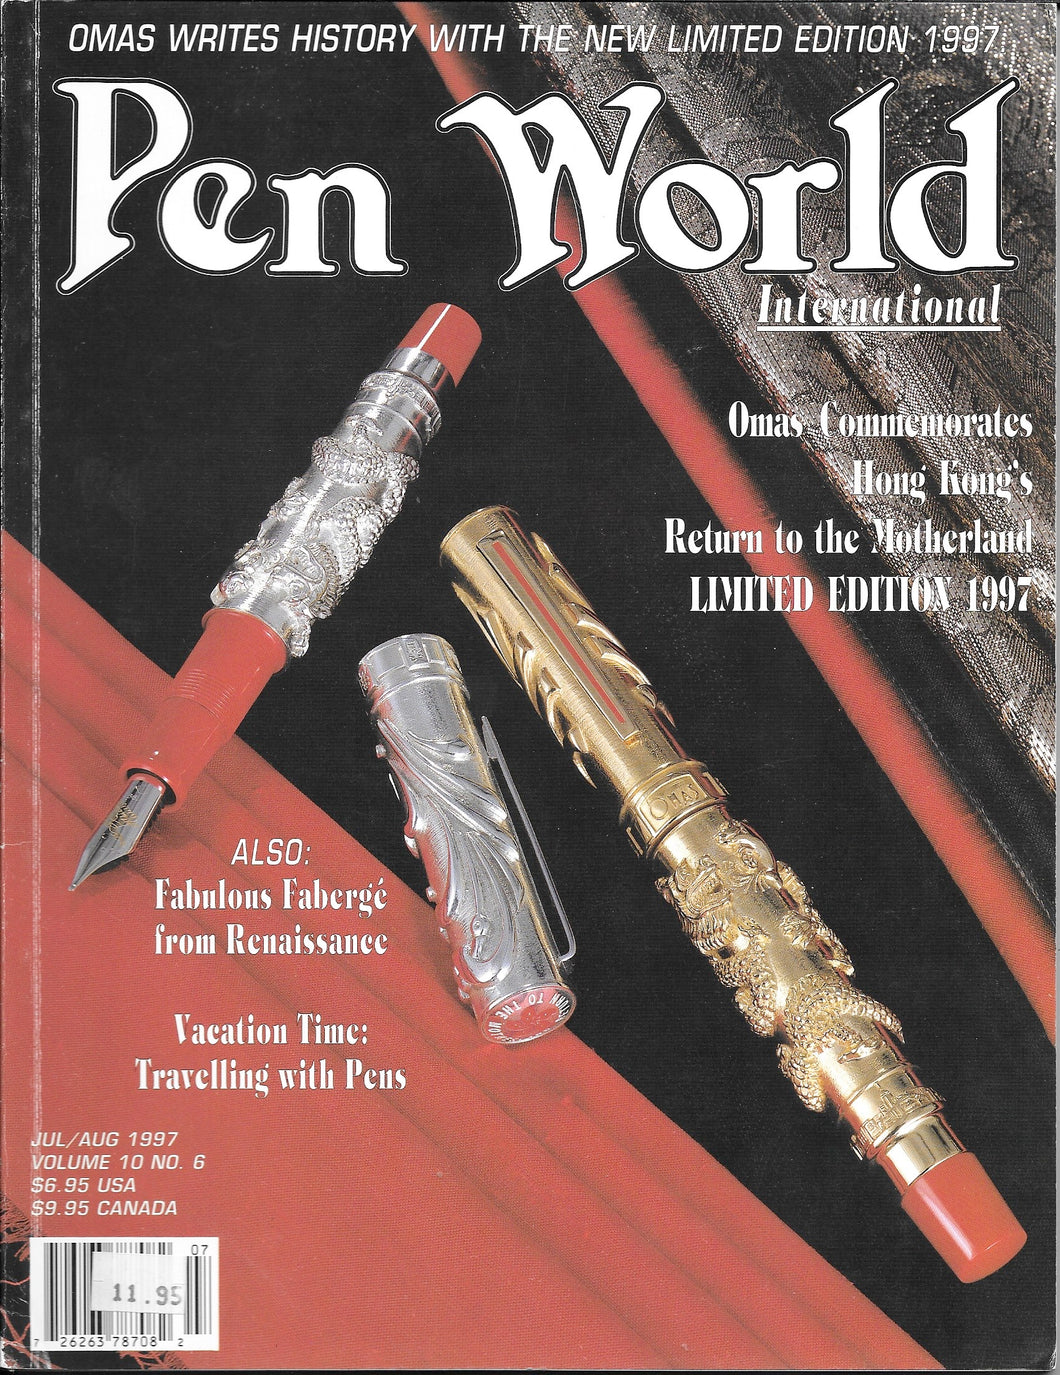 Pen World, Back Issues. July/August. 1997 Vol.10. No.6